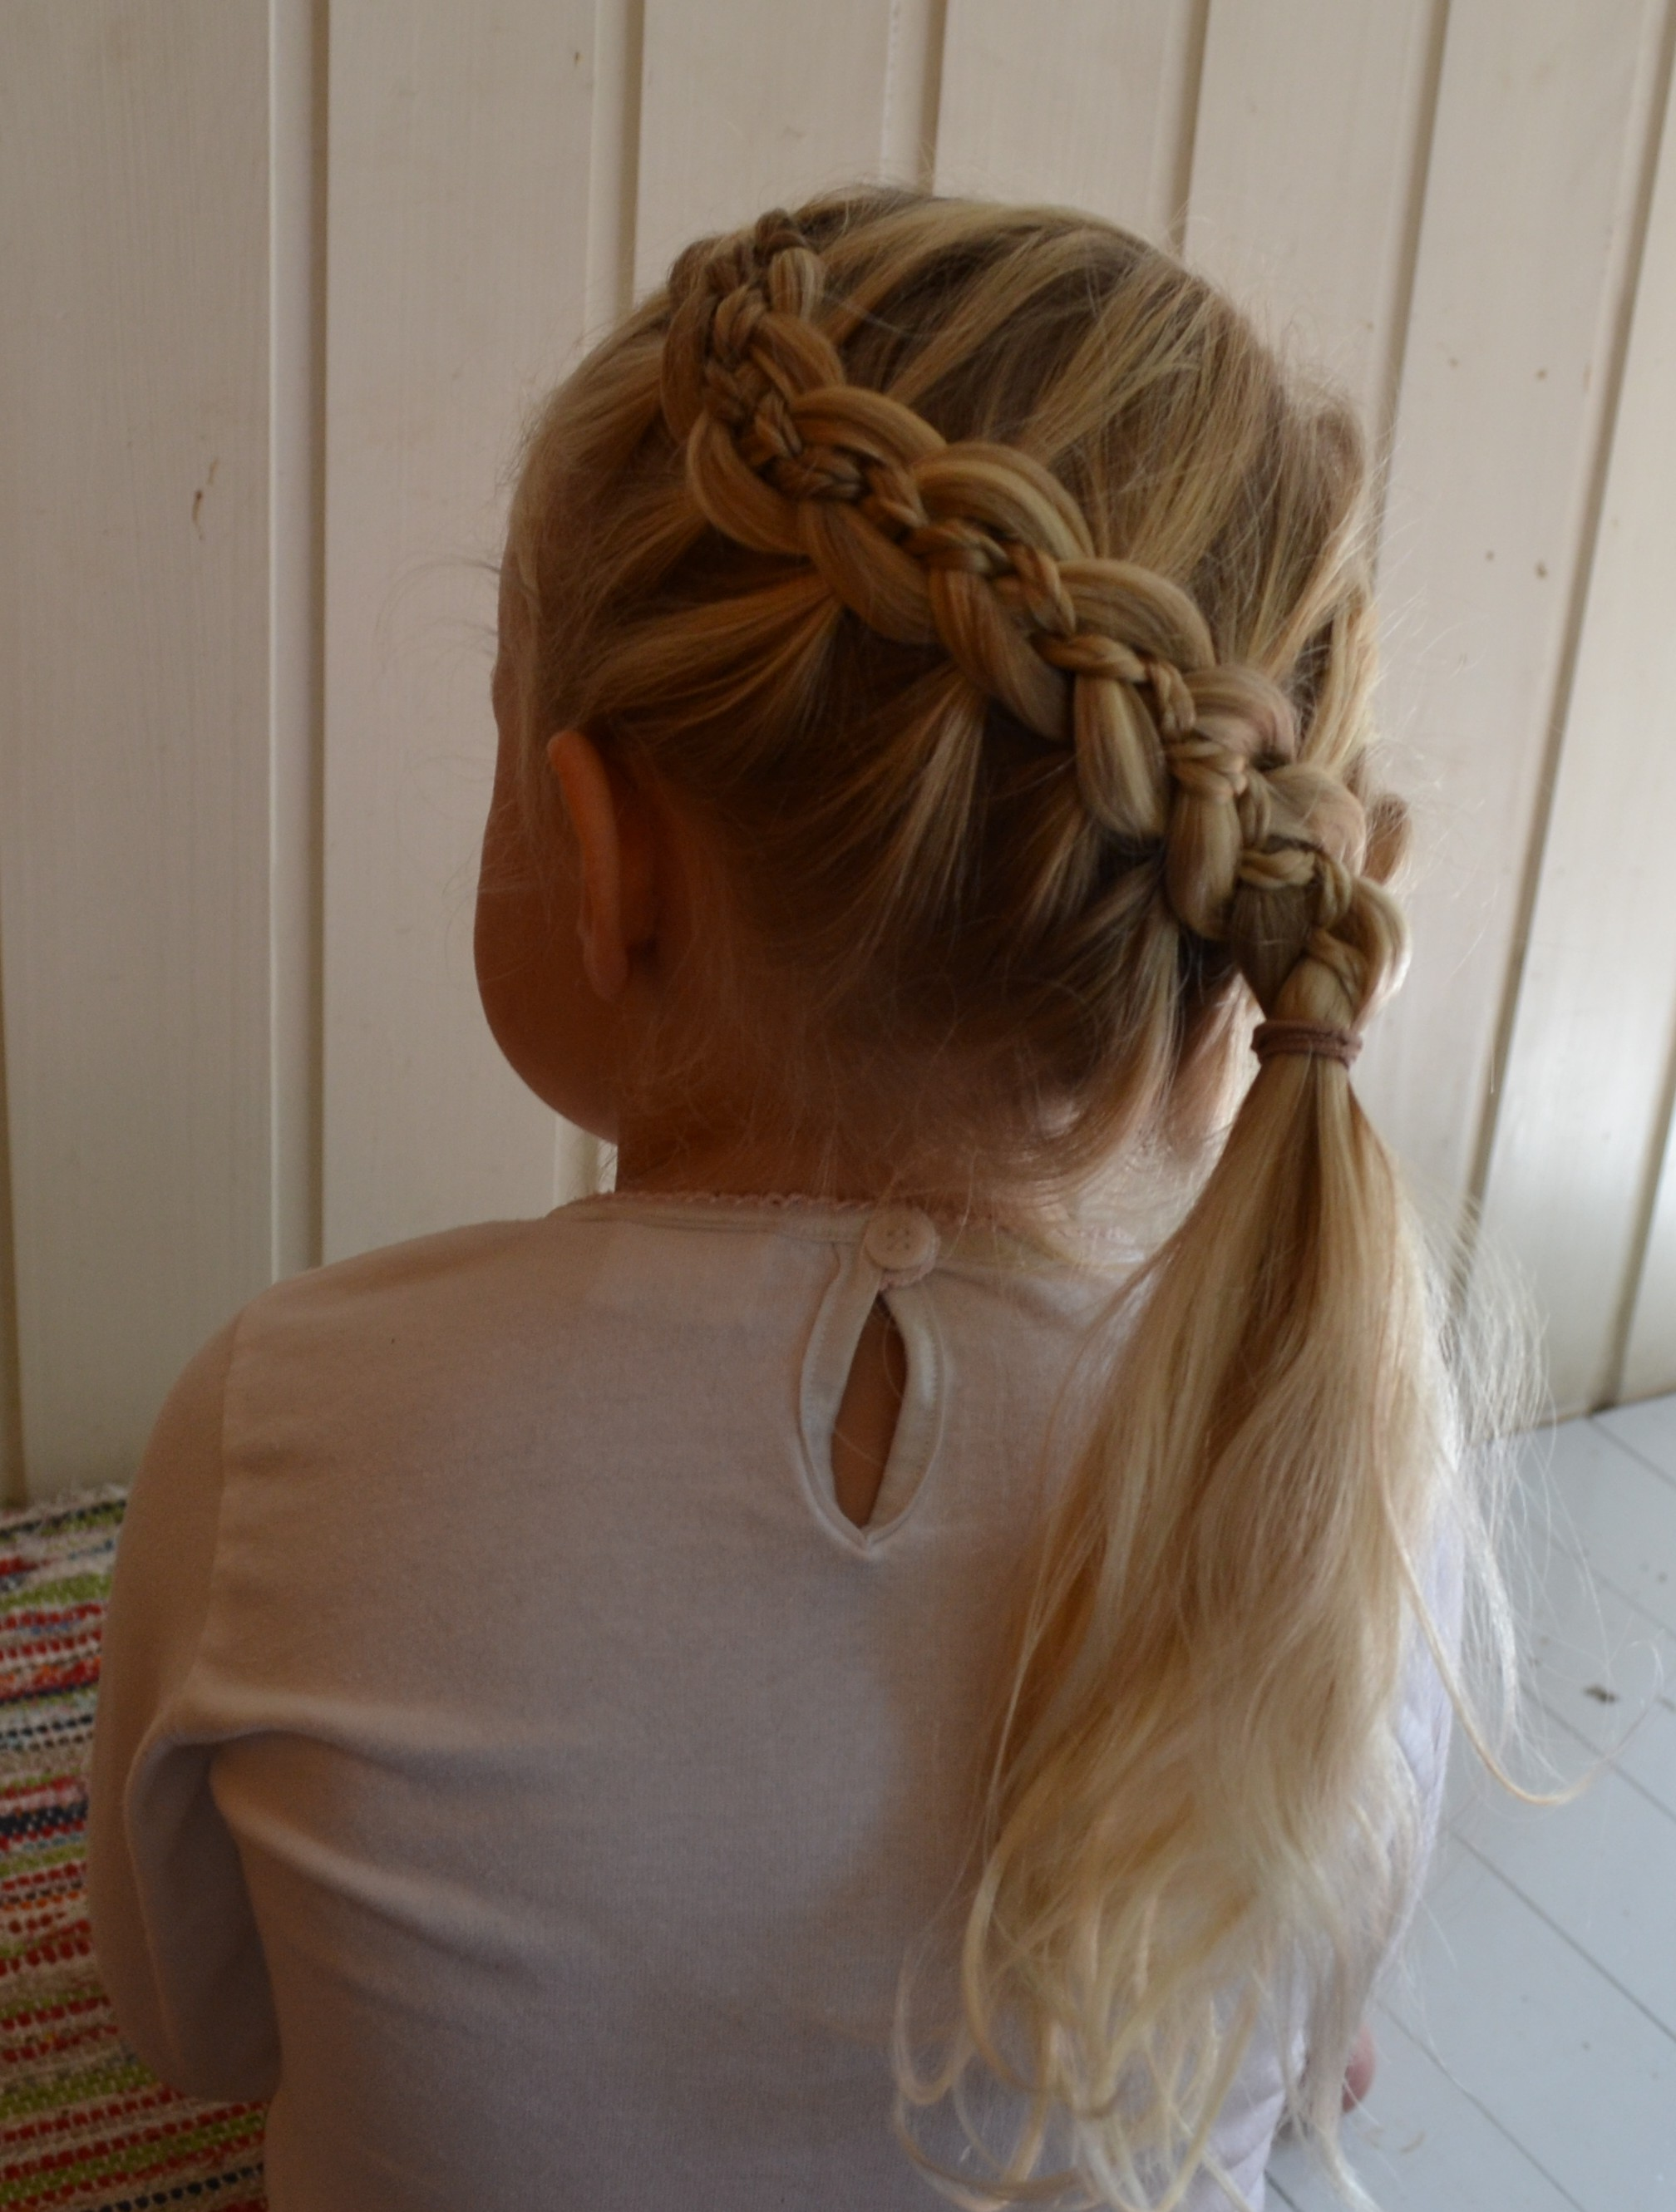 5-strand french braid with microbraids